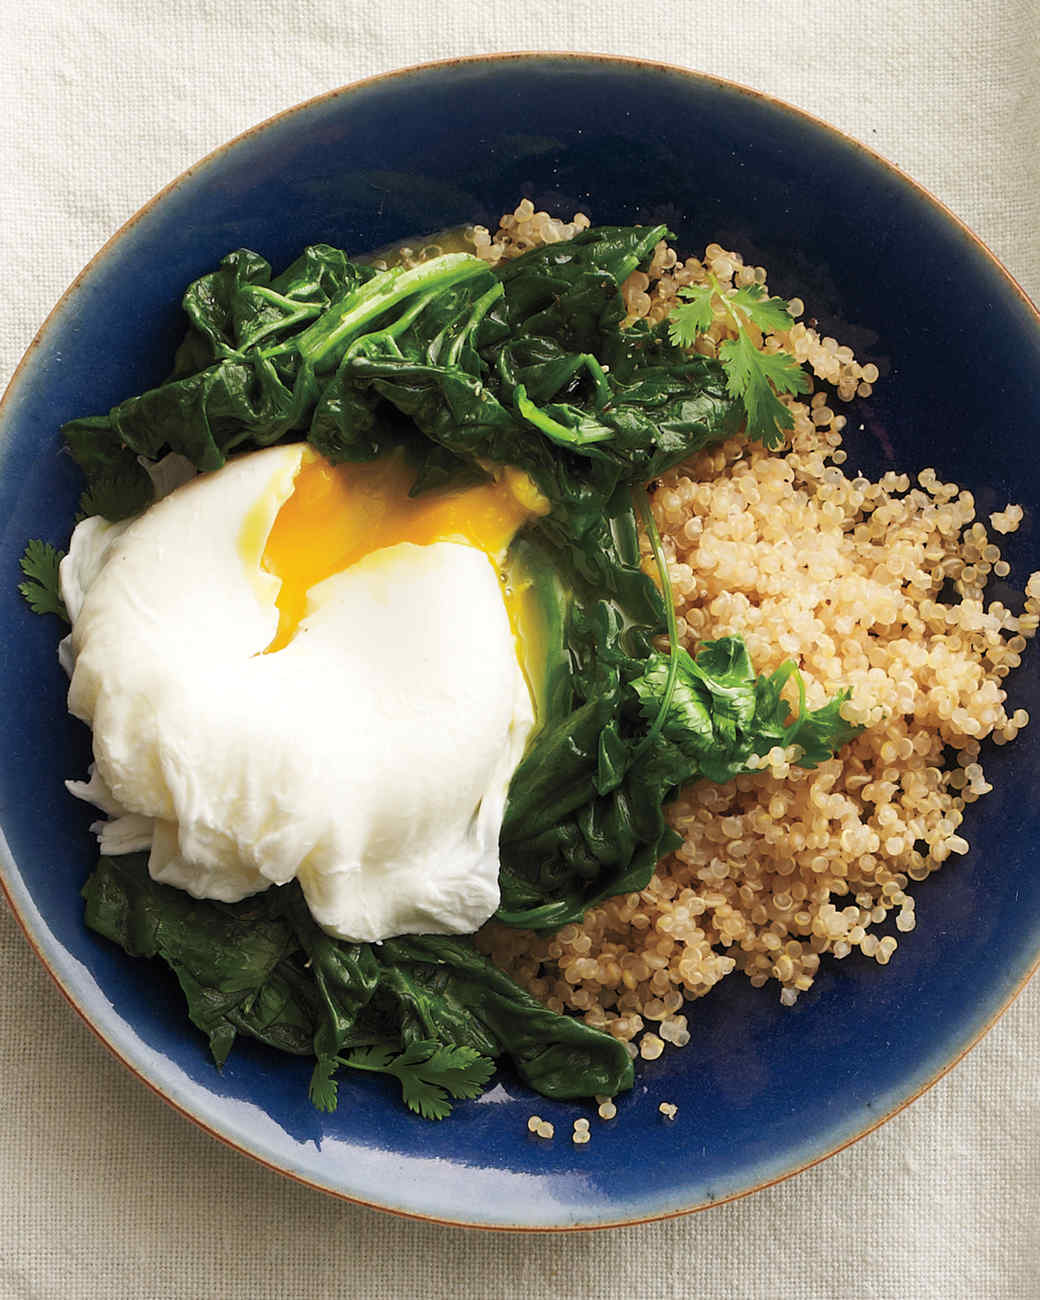 eggs-poached-spinach-417-comp-med110298.jpg